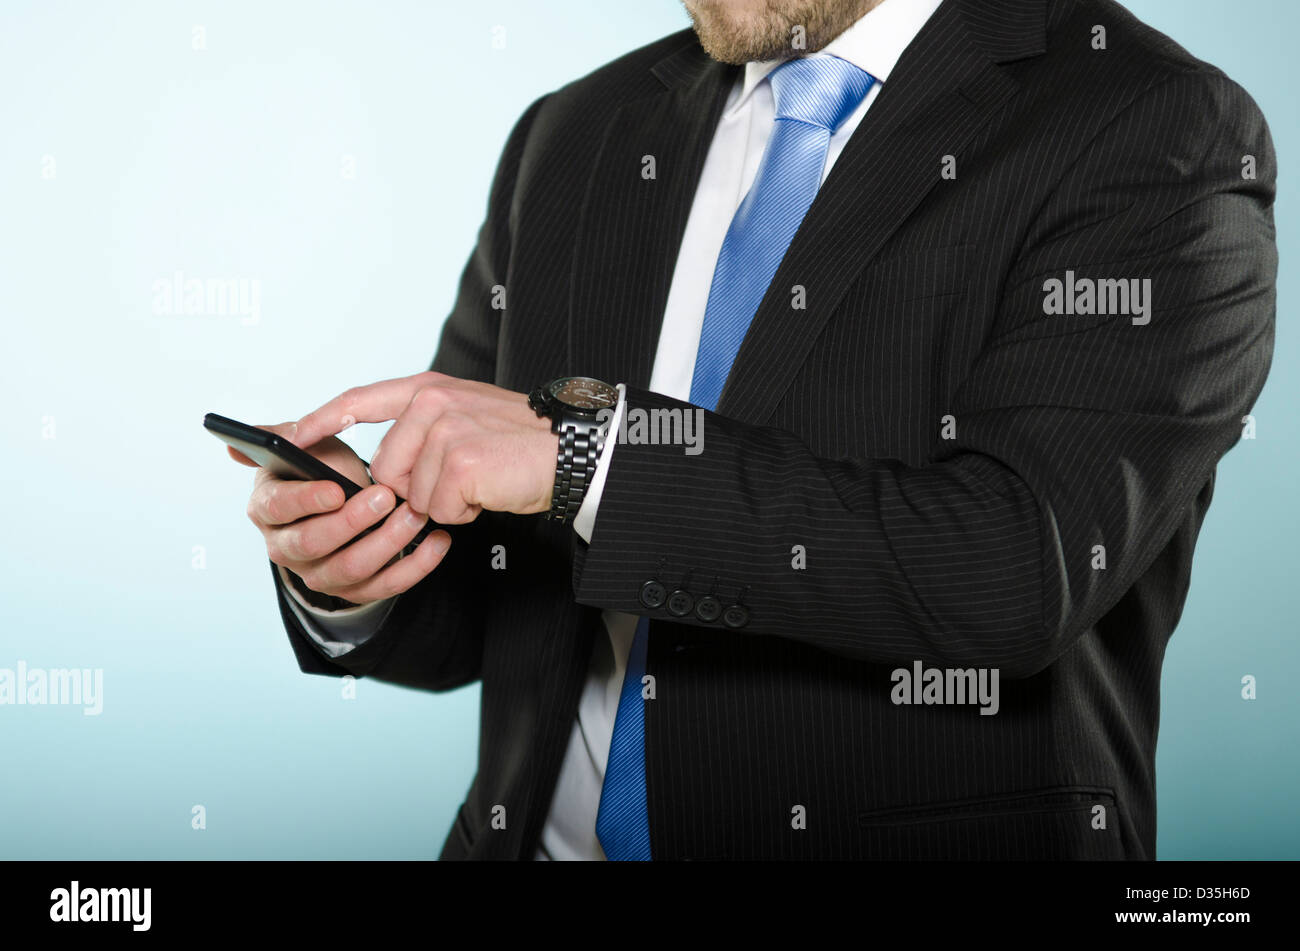 Businessman using smart phone. Middle section of casually suited man using a touch screen phone with his finger. - Stock Image